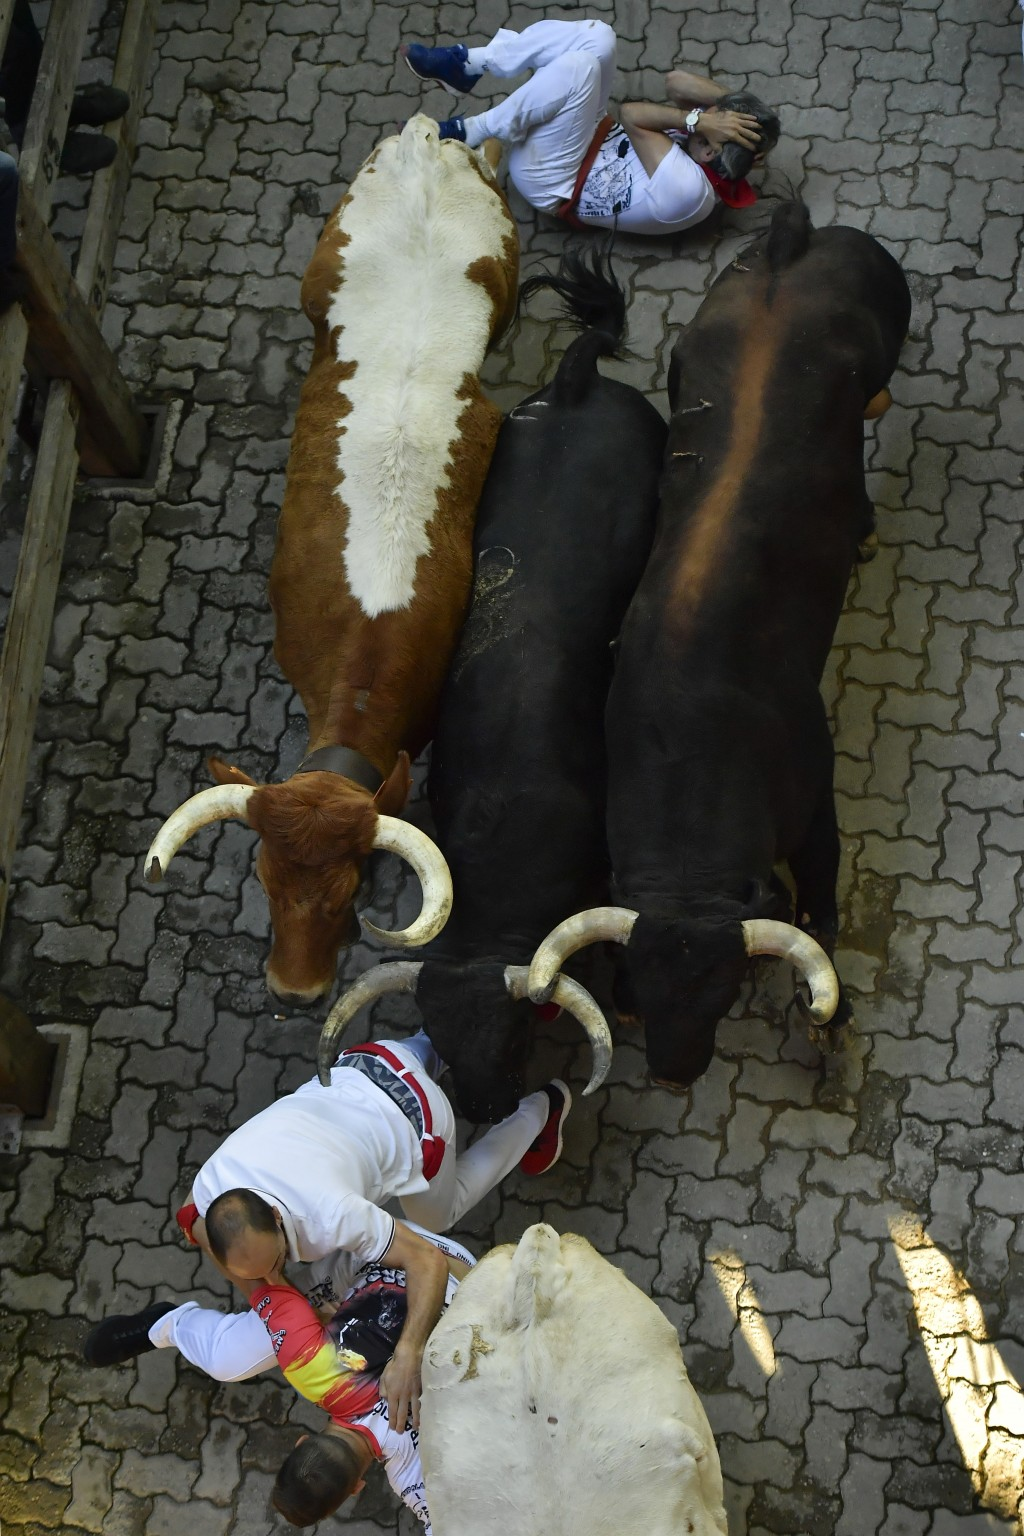 Revellers fall down during the running of the bulls at the San Fermin Festival, in Pamplona, northern Spain, Wednesday, July 10, 2019. Revellers from ...